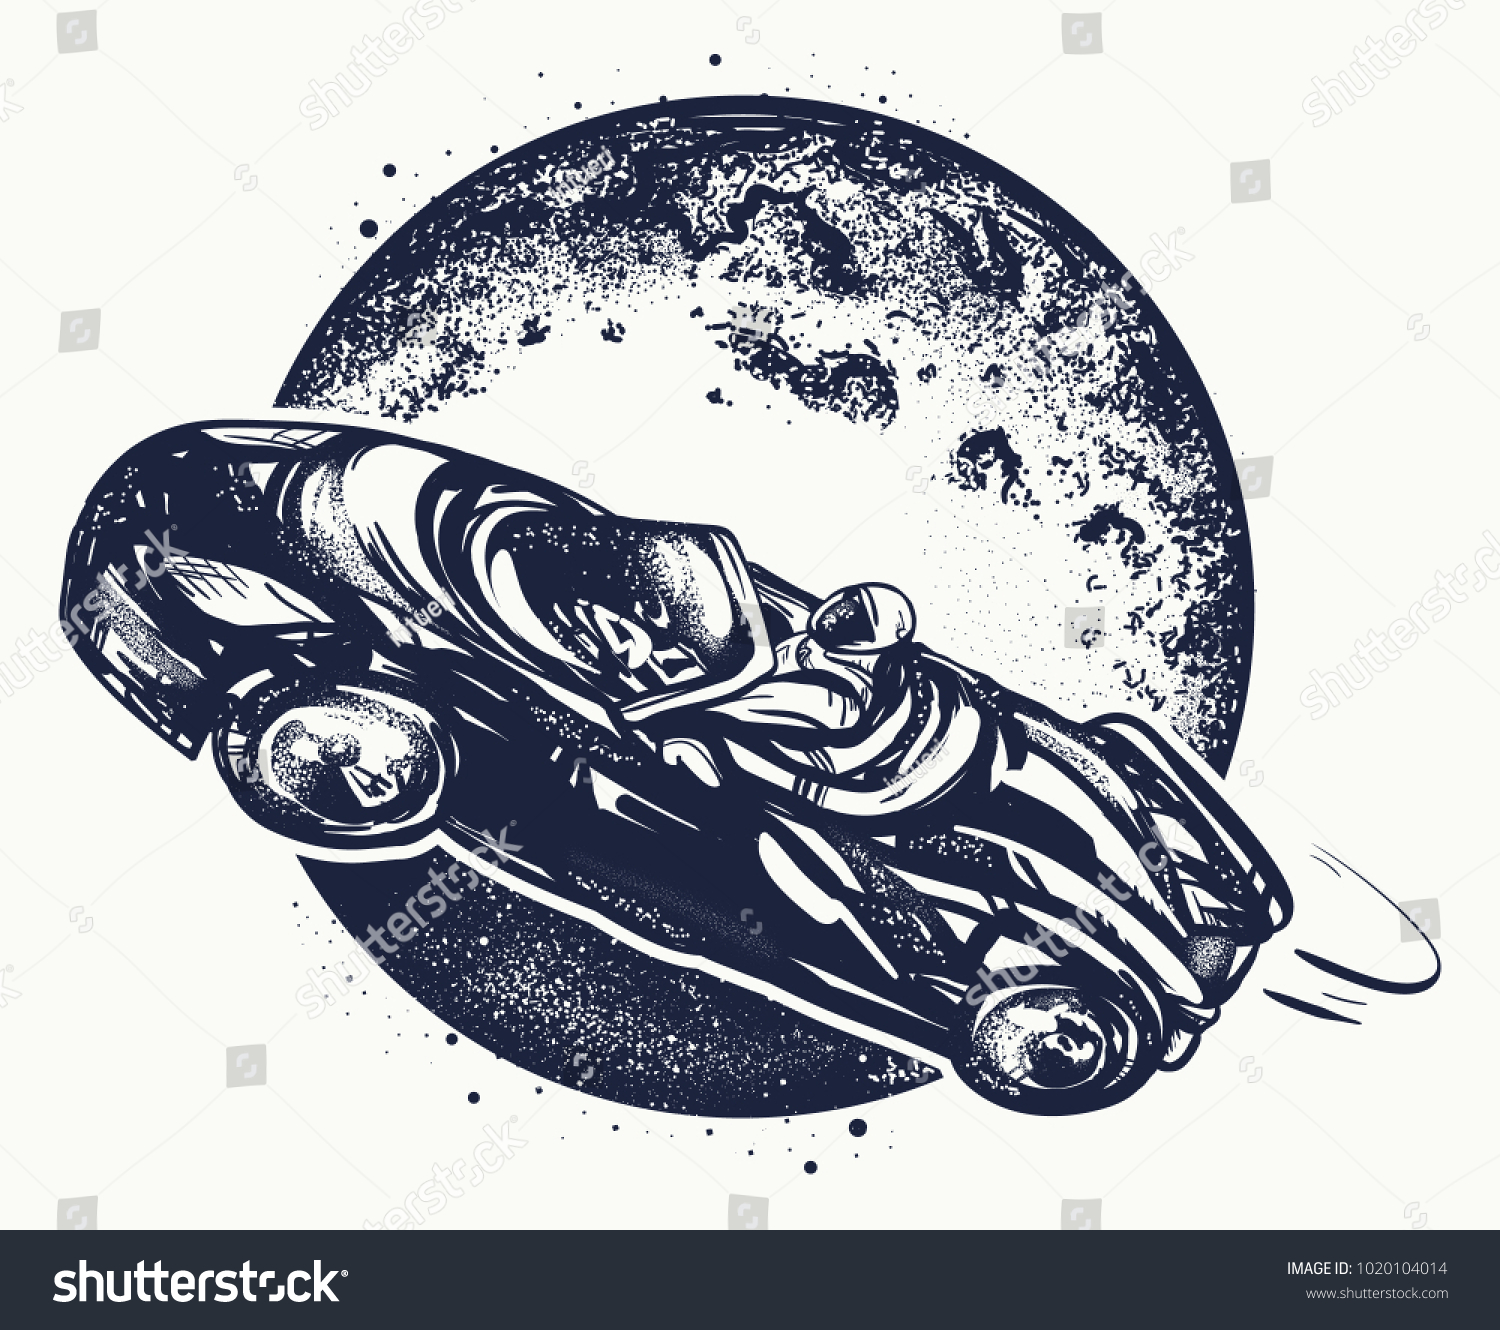 Car Space Tattoo Tshirt Design Symbol Stock Vector Royalty Free